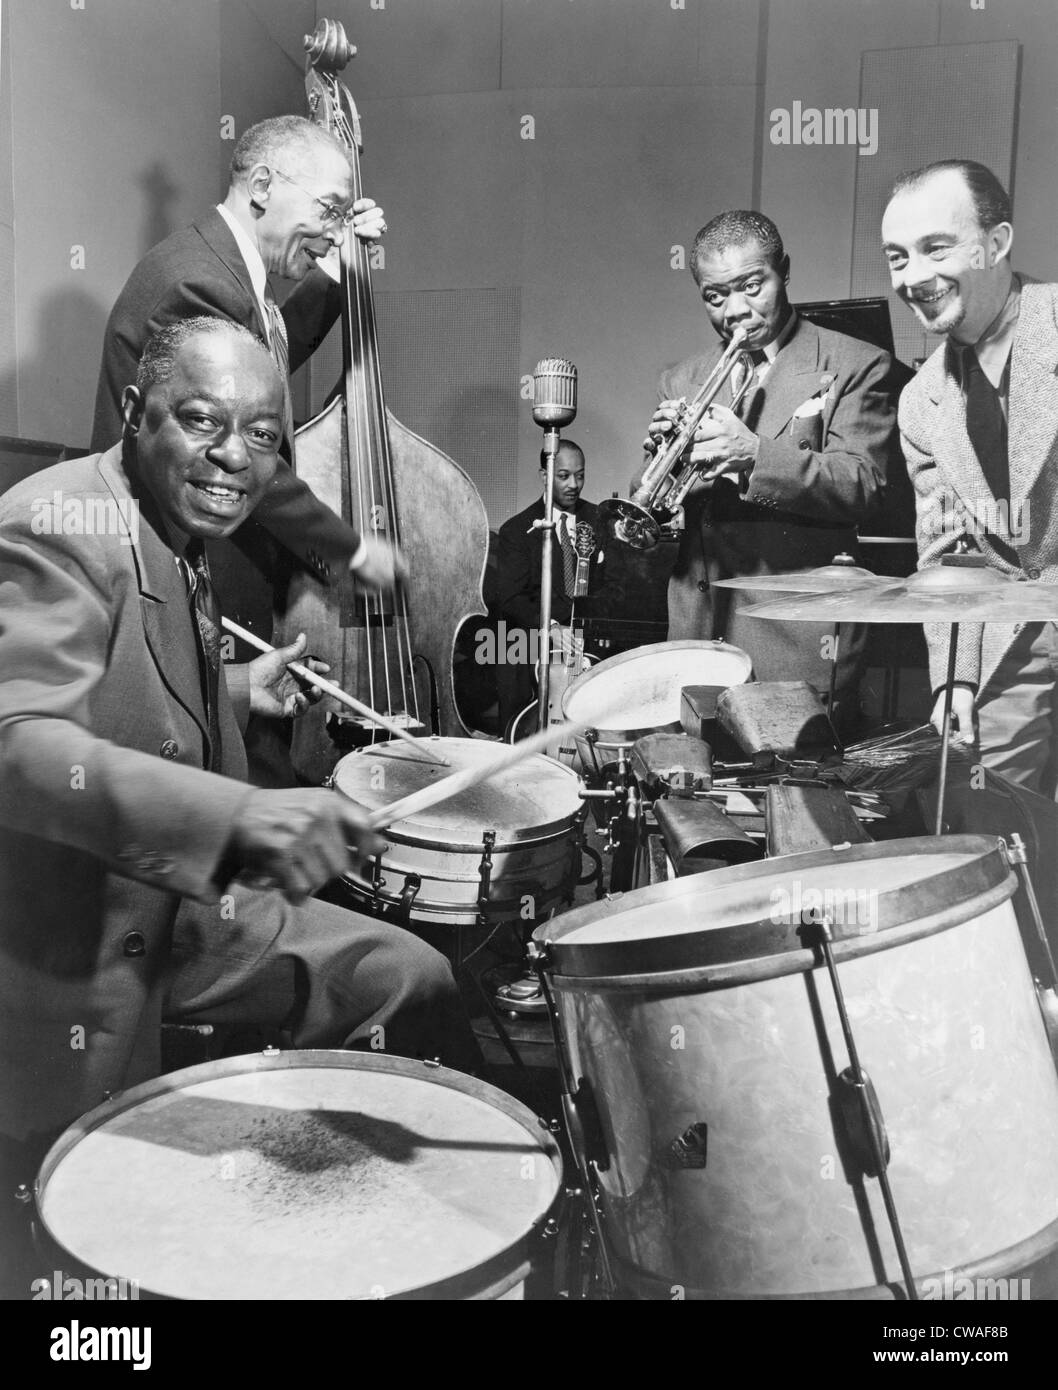 """Louis Armstrong (1901-1971), playing trumpet with others during a 1947 broadcast of """"This is Jazz"""" radio show, directed by Rudi Stock Photo"""